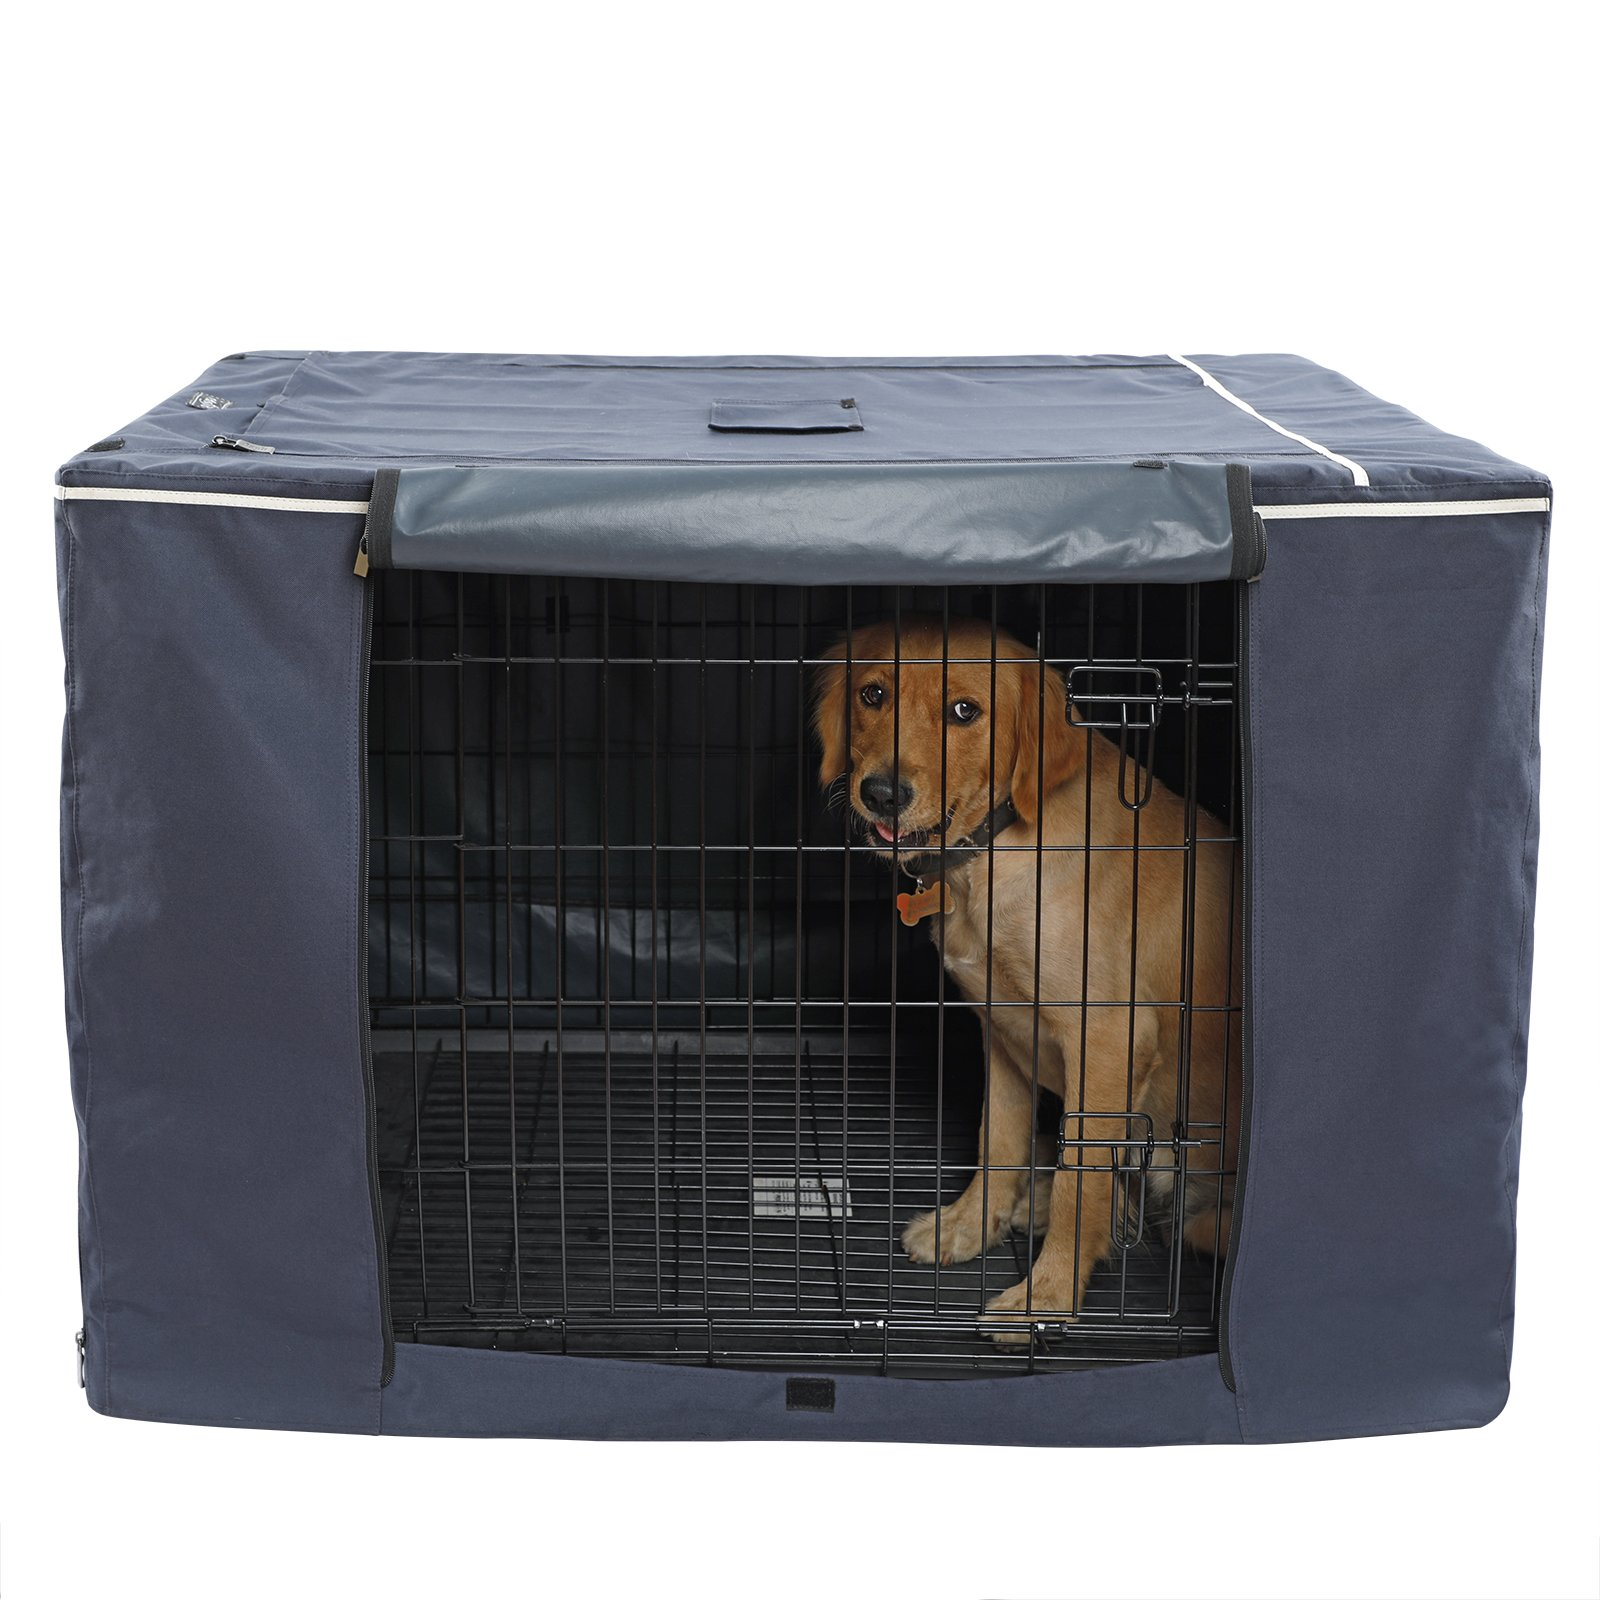 "Petsfit Oxford Cloth Pet Kennel Cover for Wire Dog Crates 42""L x 28""W x 30""H, with Three-Side and Top Windows, Back Zipper, Dark Blue"